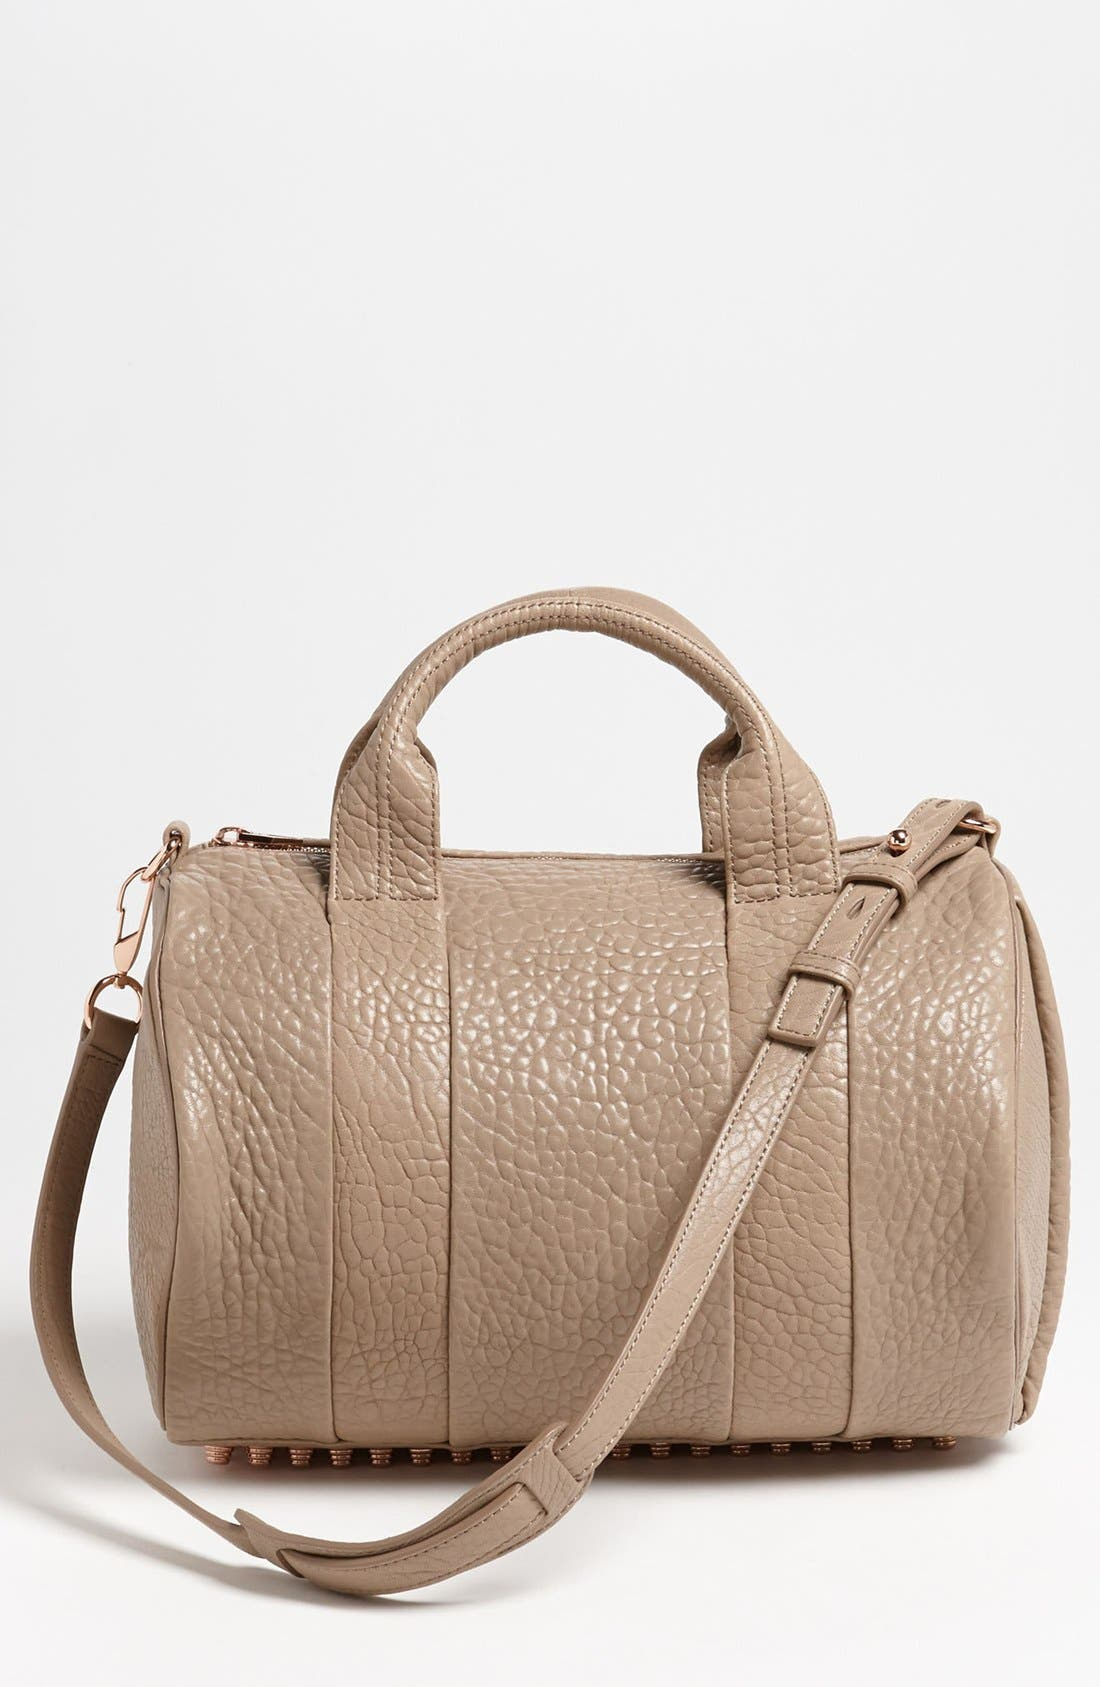 Alternate Image 1 Selected - Alexander Wang 'Rocco - Rosegold' Leather Satchel